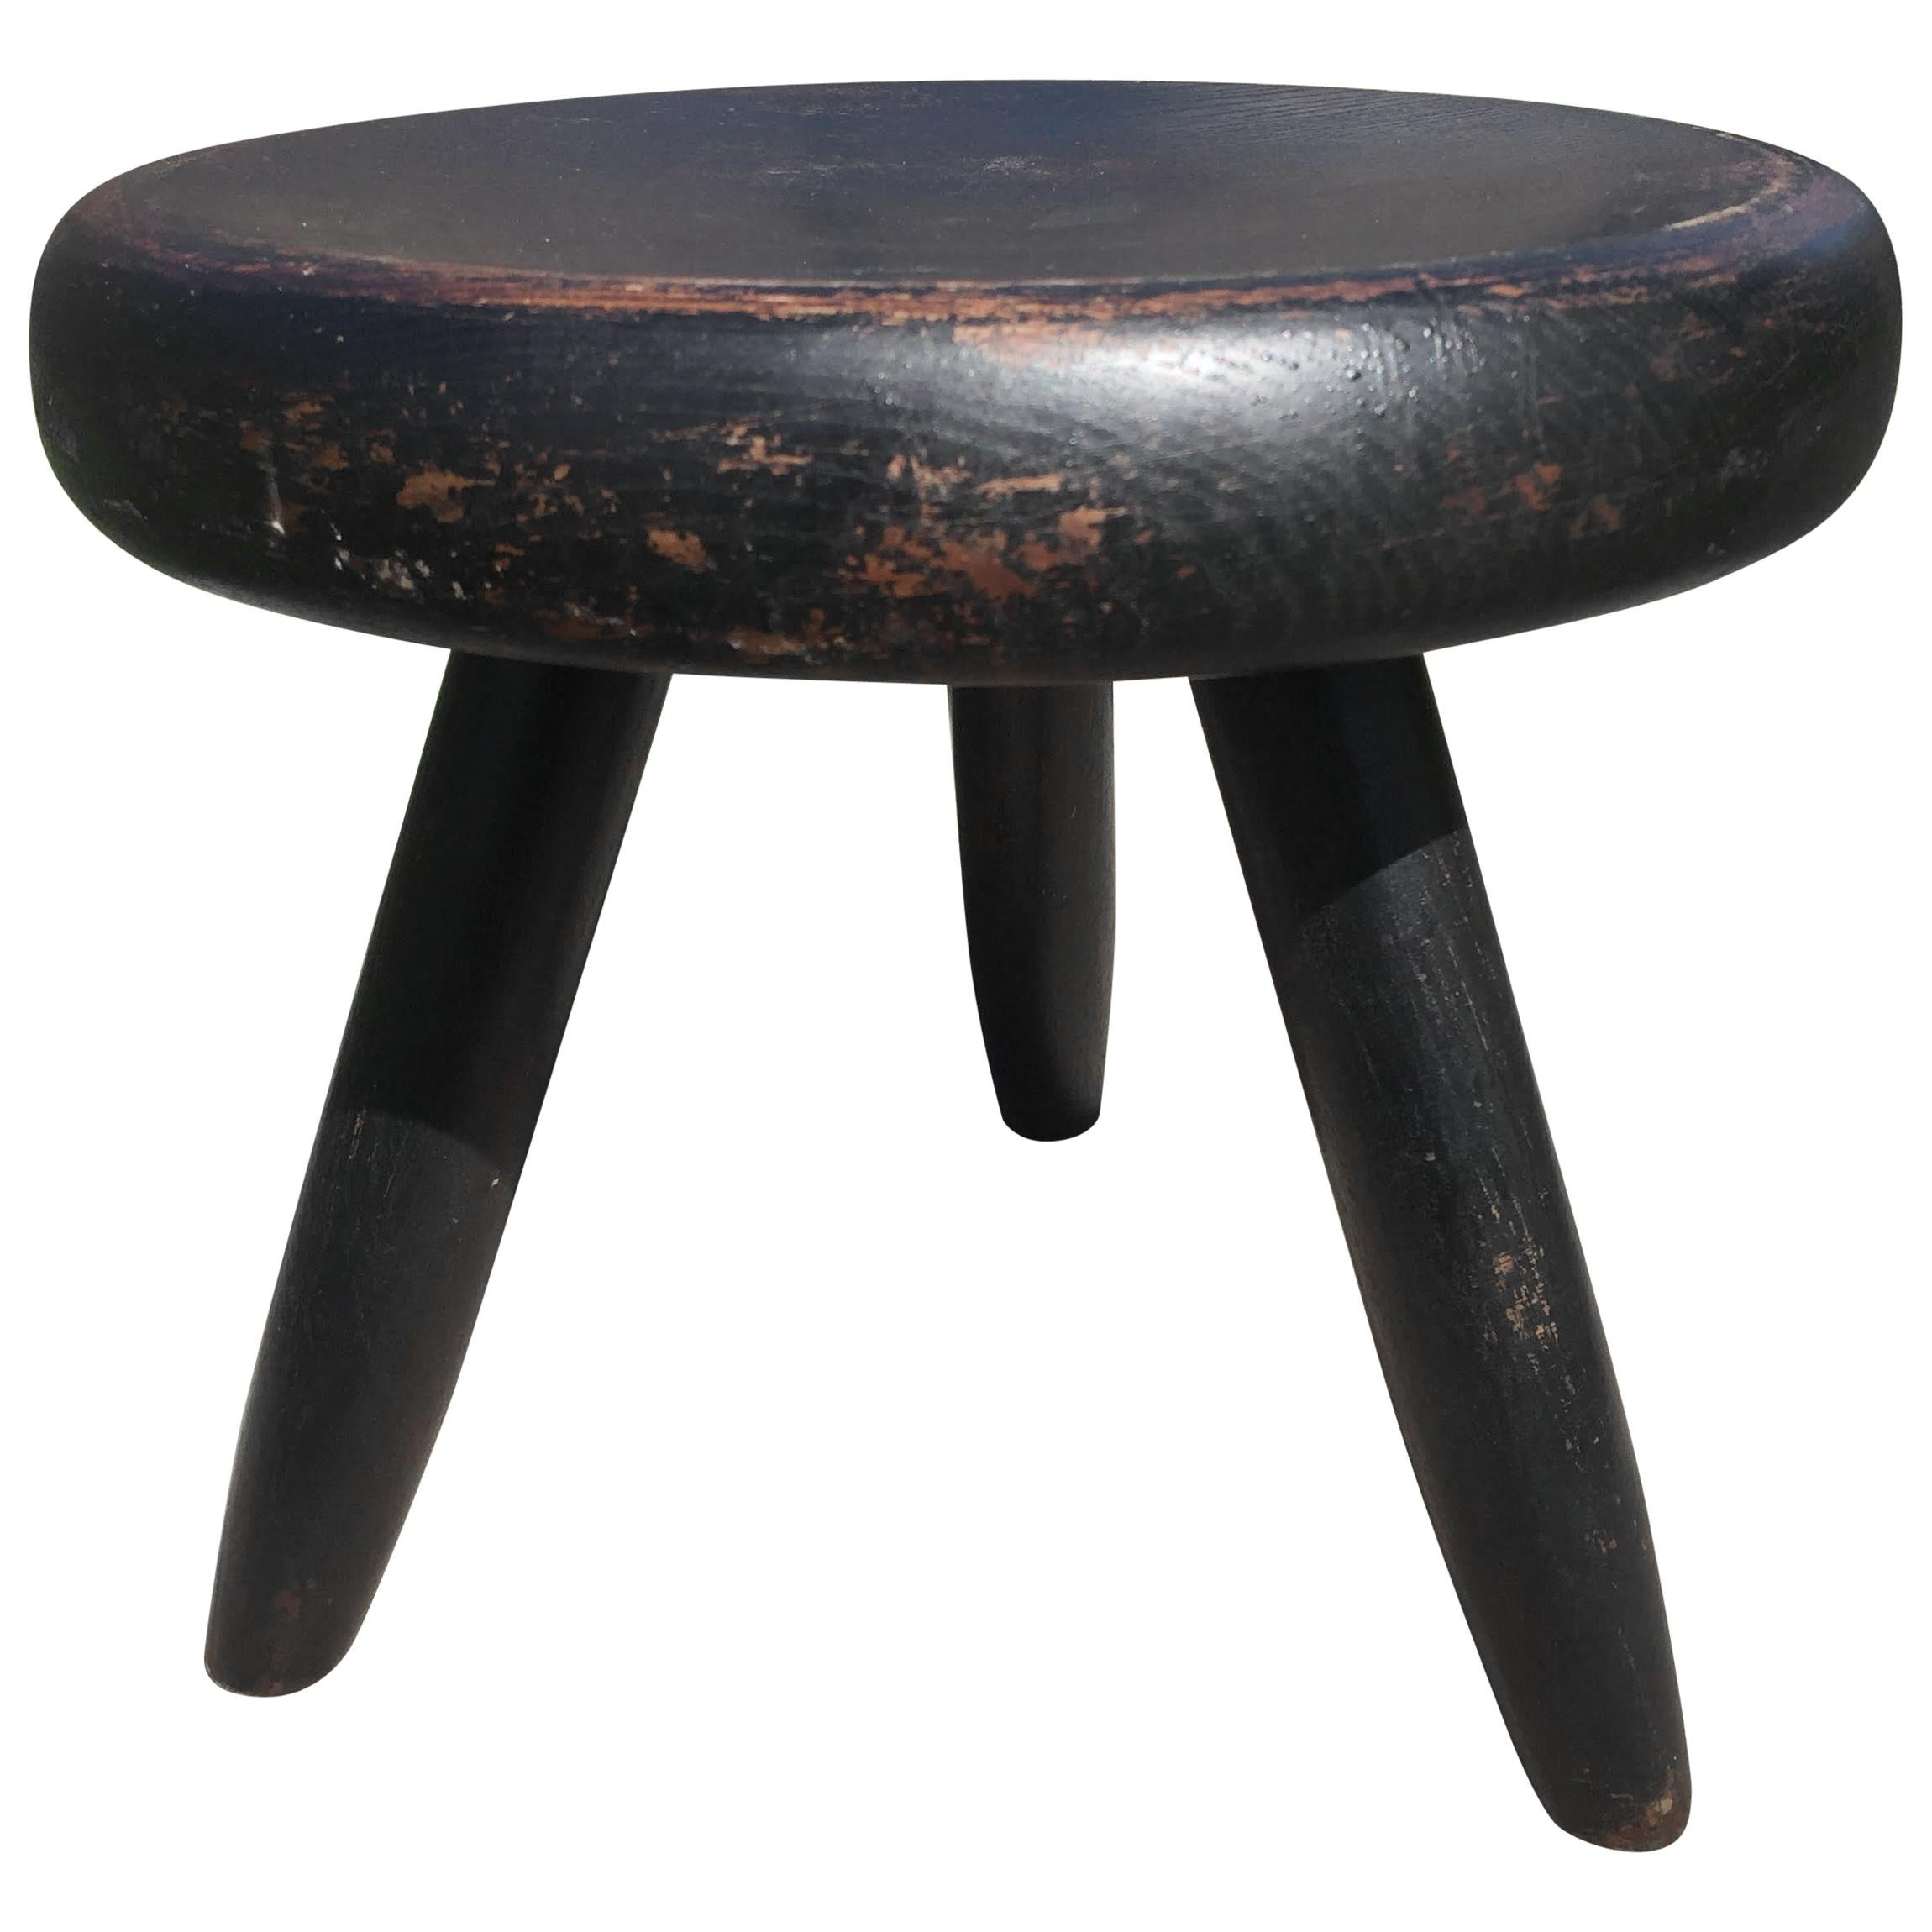 Charlotte Perriand's Berger Stool